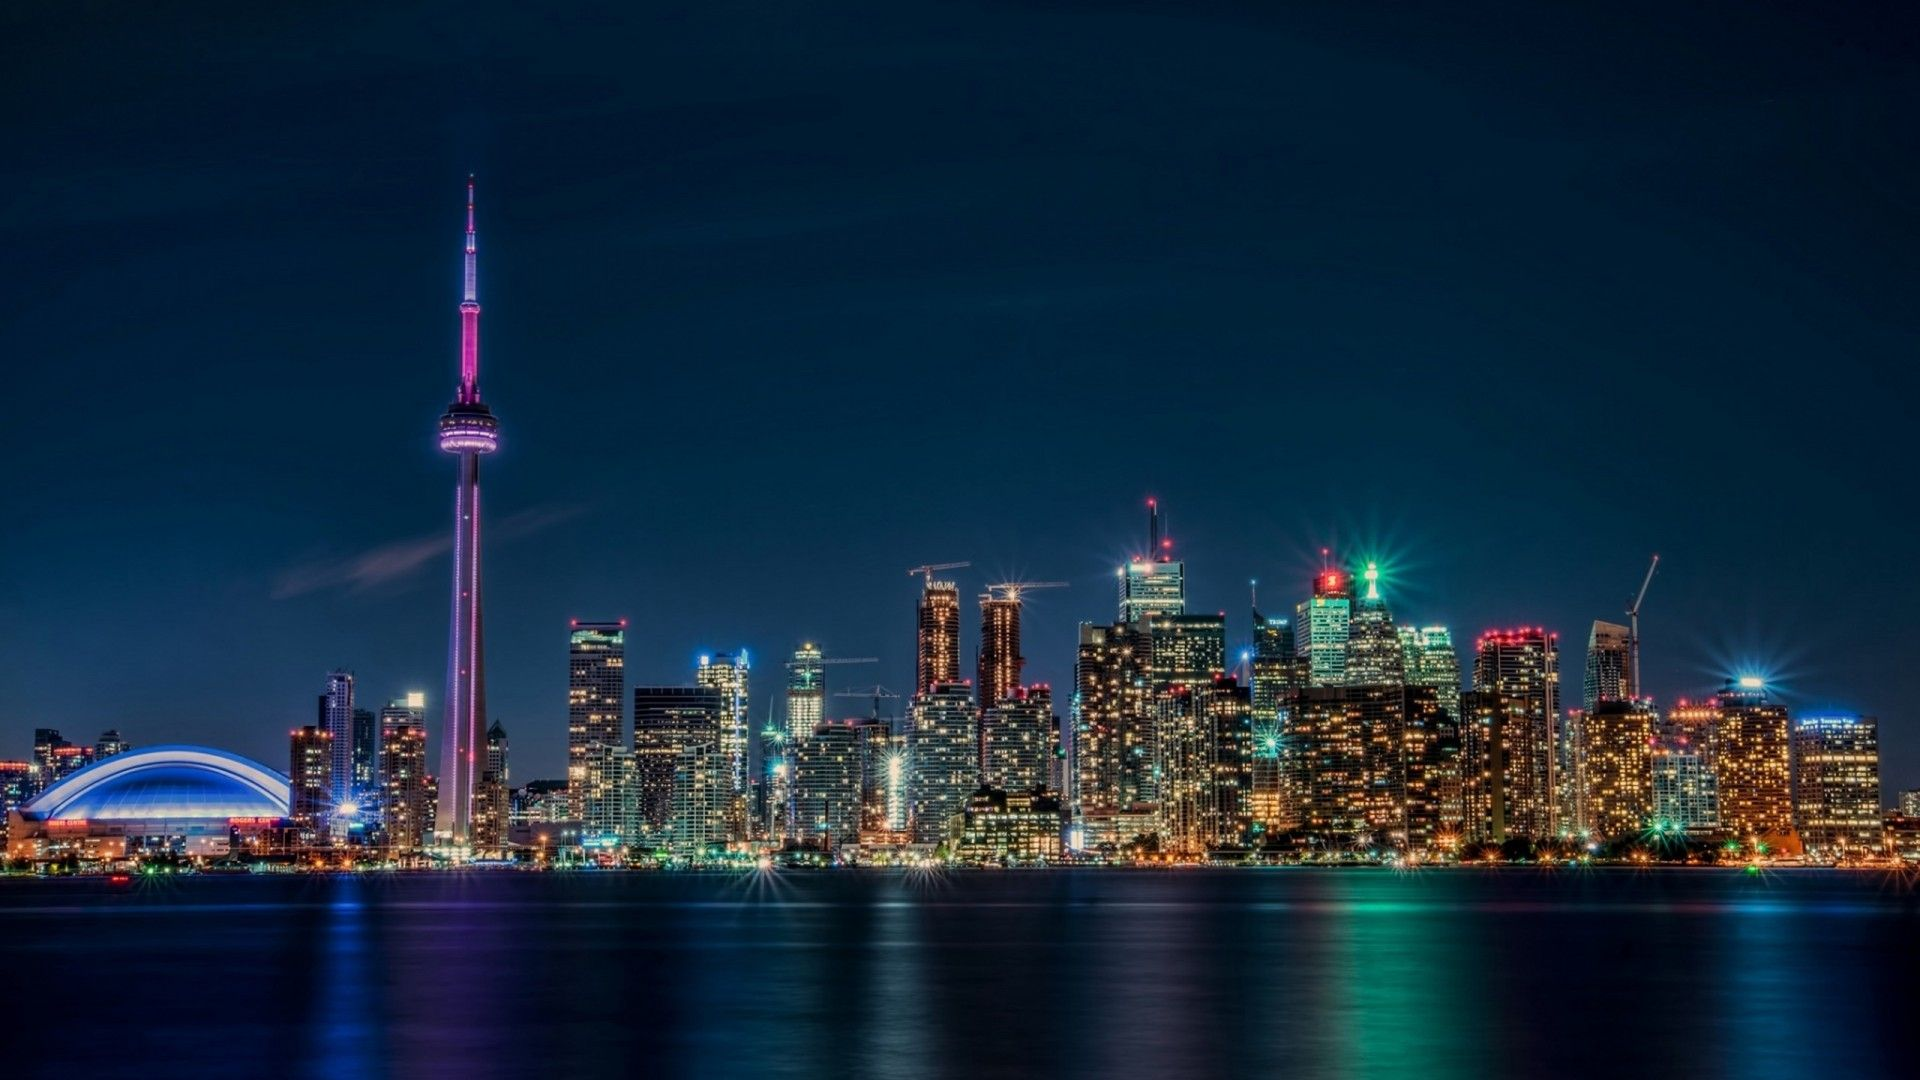 Toronto Wallpapers Hd Free Android Apps On Google Play 1024 629 Toronto Wallpapers 41 Wallpapers Adorable Wallpa Wallpaper Canada Wallpaper Toronto Canada